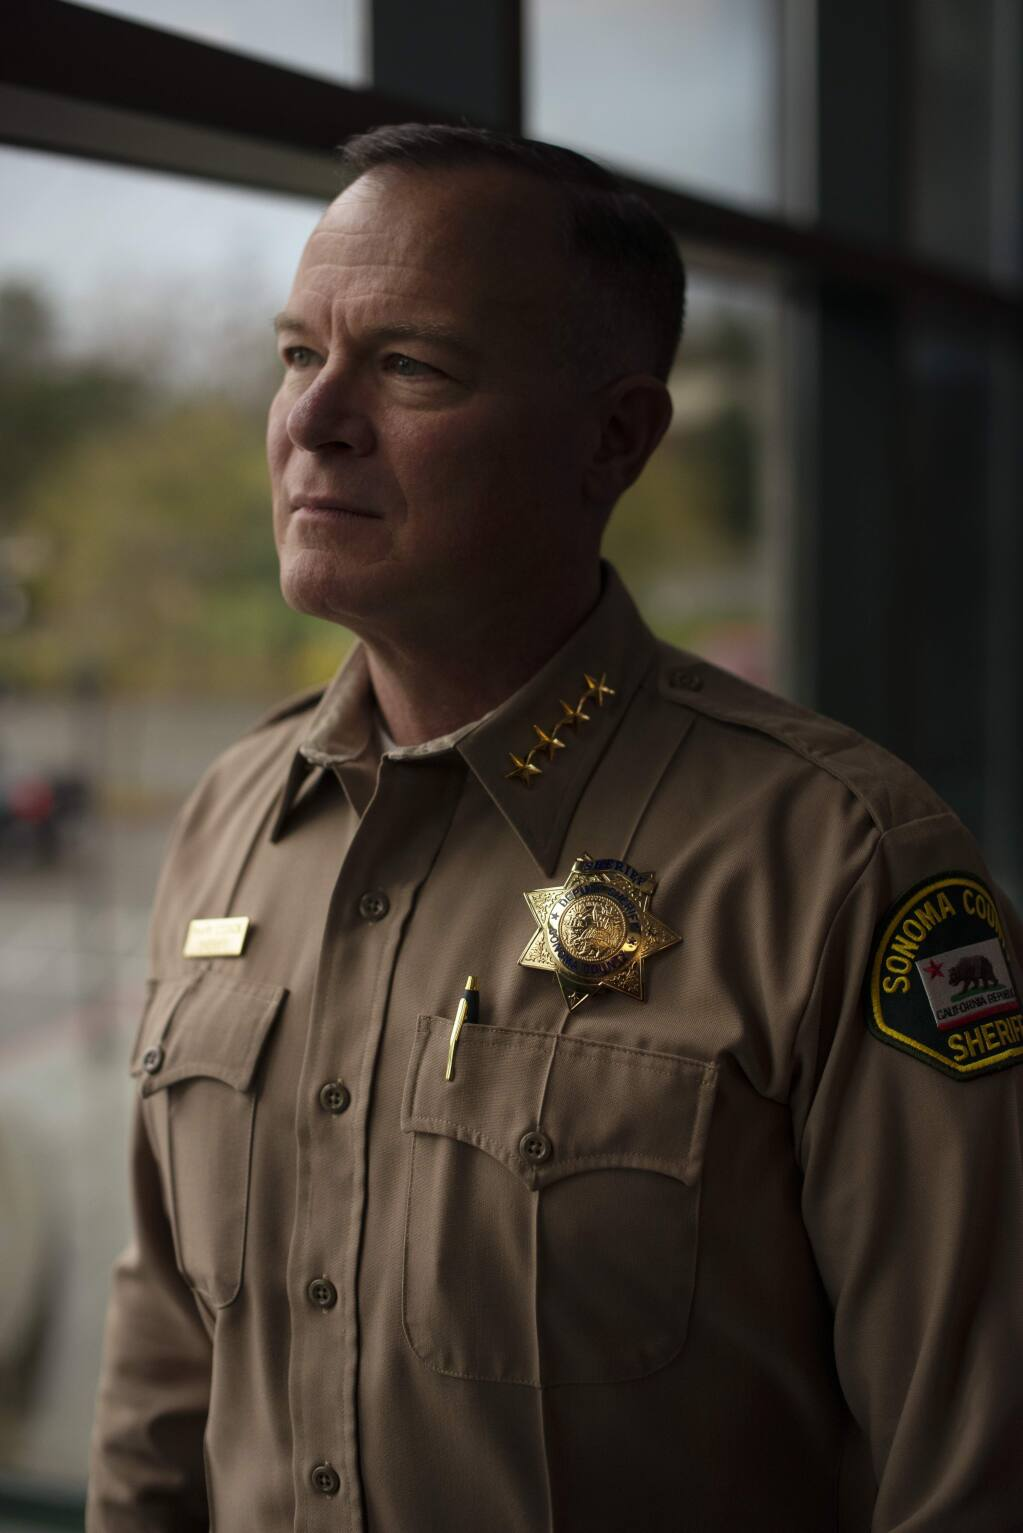 Sonoma County Sheriff Mark Essick photographed at the Sheriff's office building in Santa Rosa, California. January 5, 2019.(Photo: Erik Castro/for The Press Democrat)